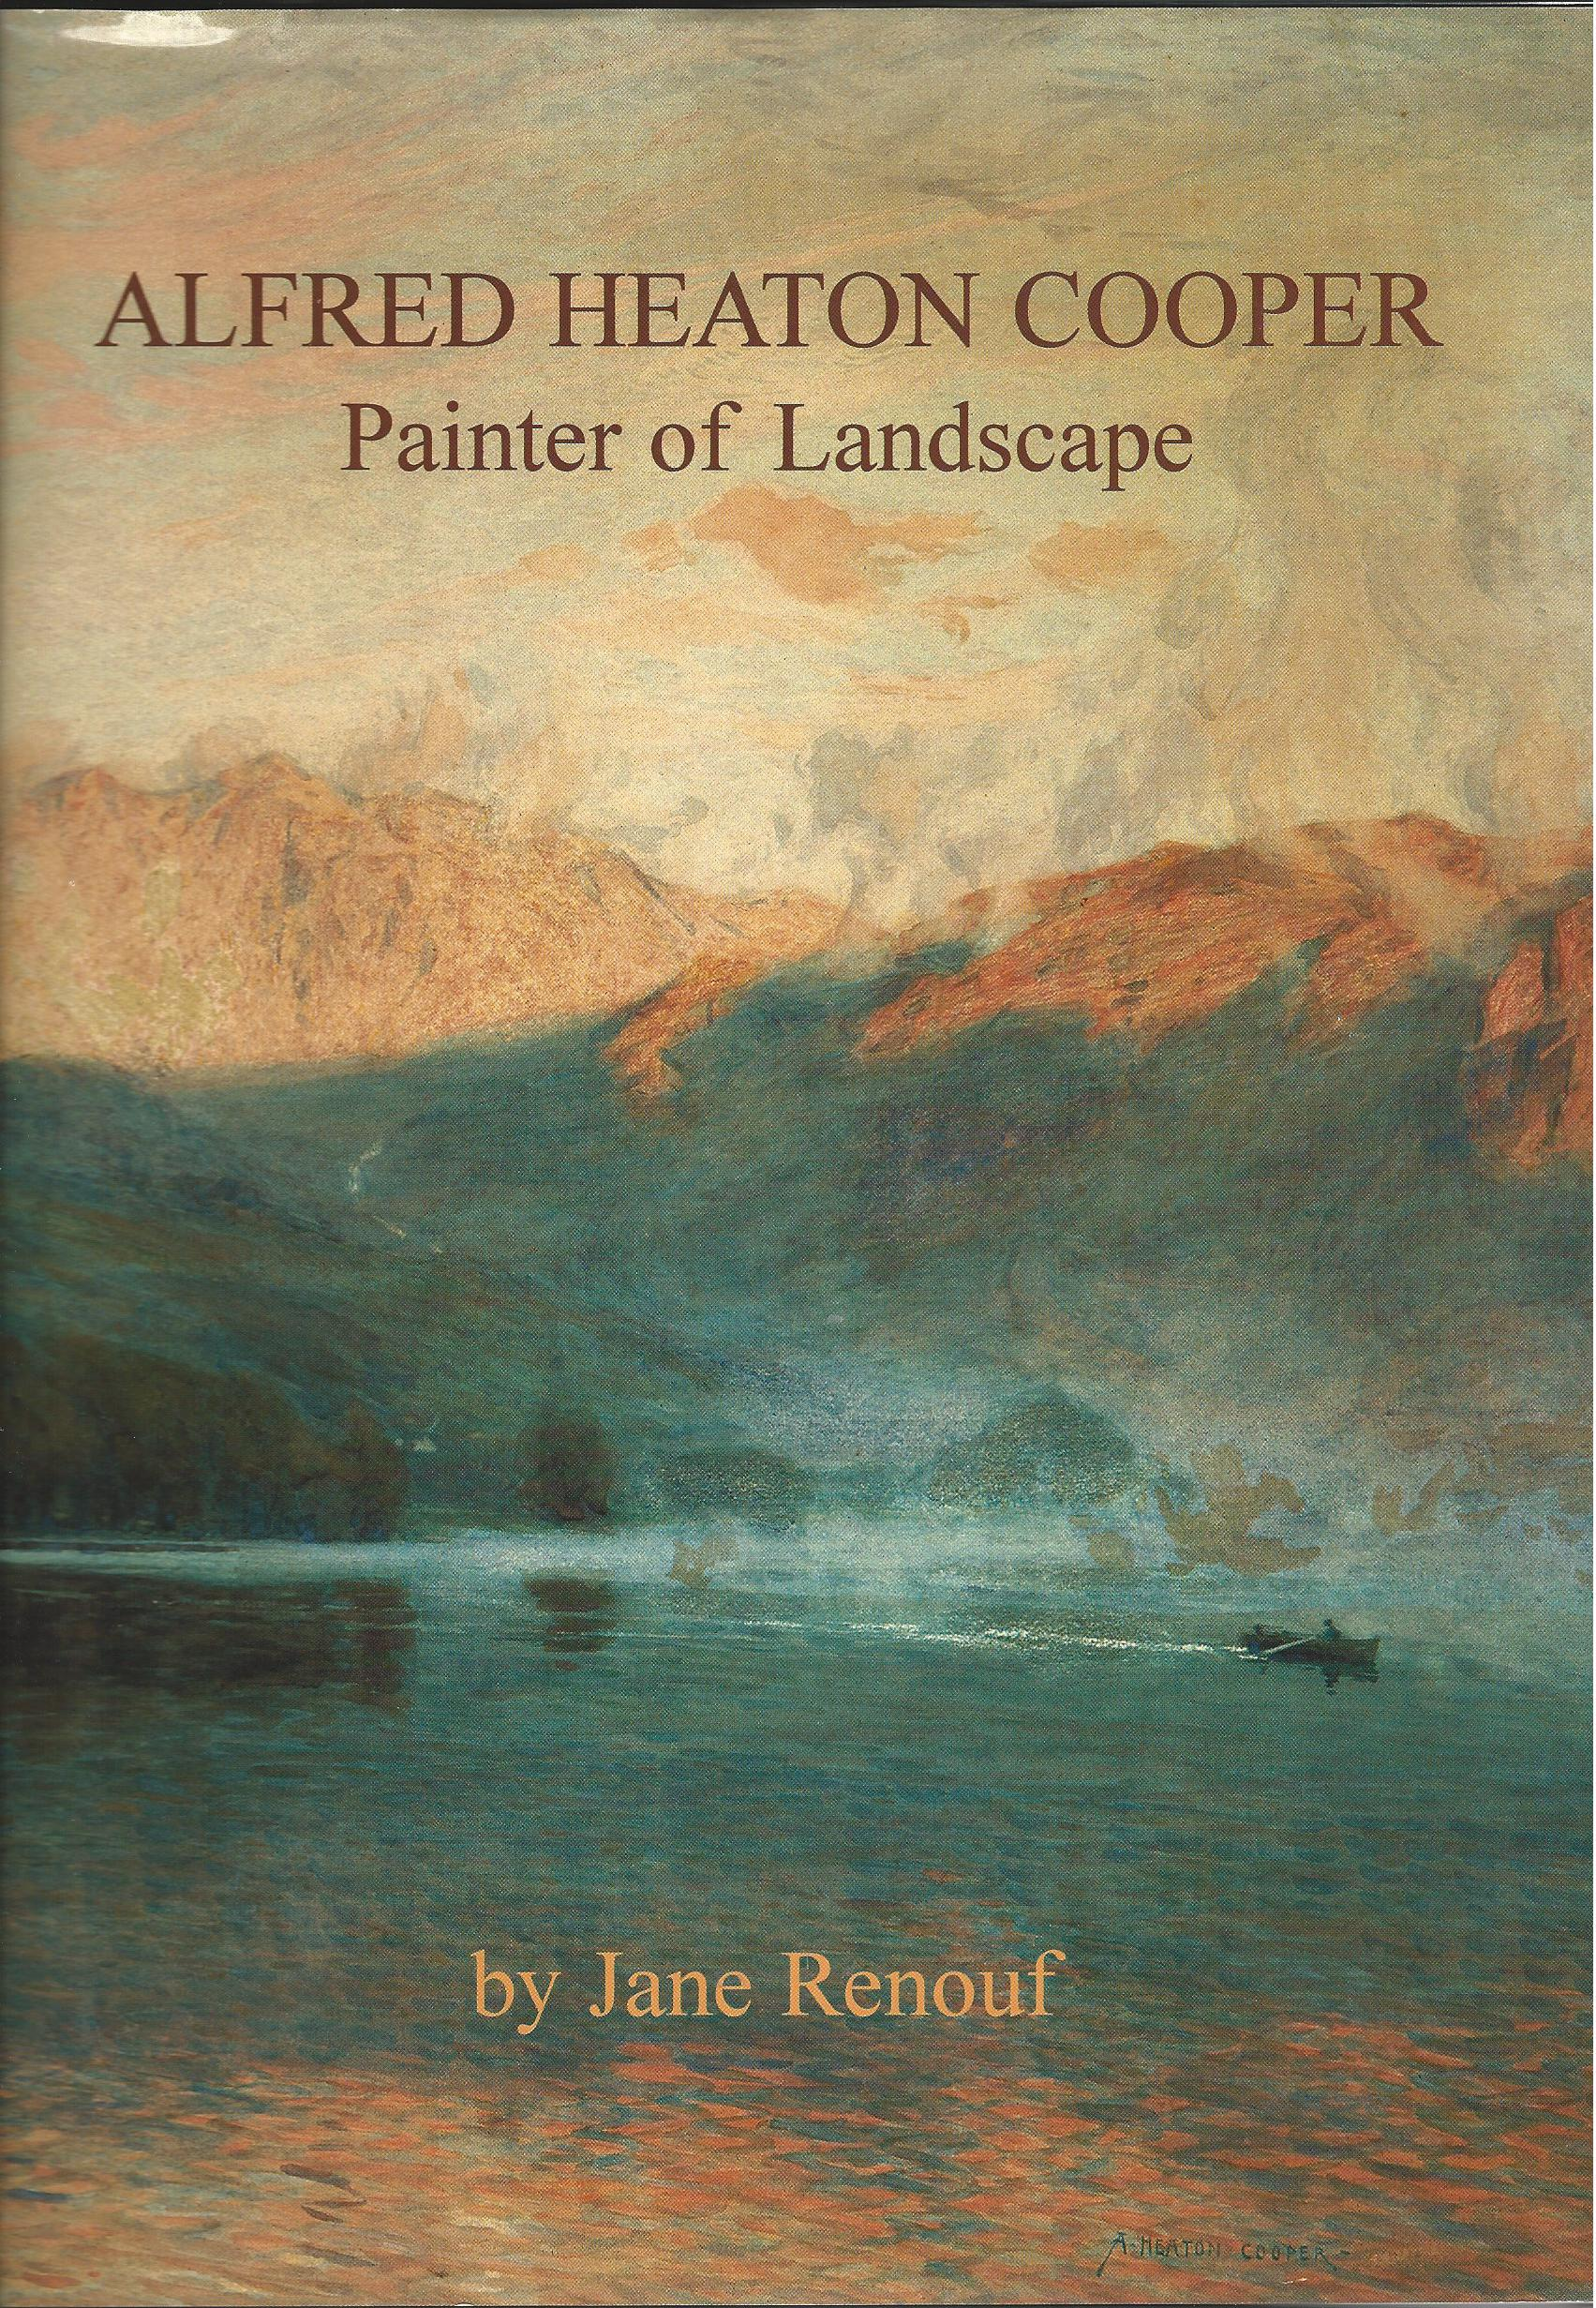 Image for Alfred Heaton Cooper, Painter of Landscape